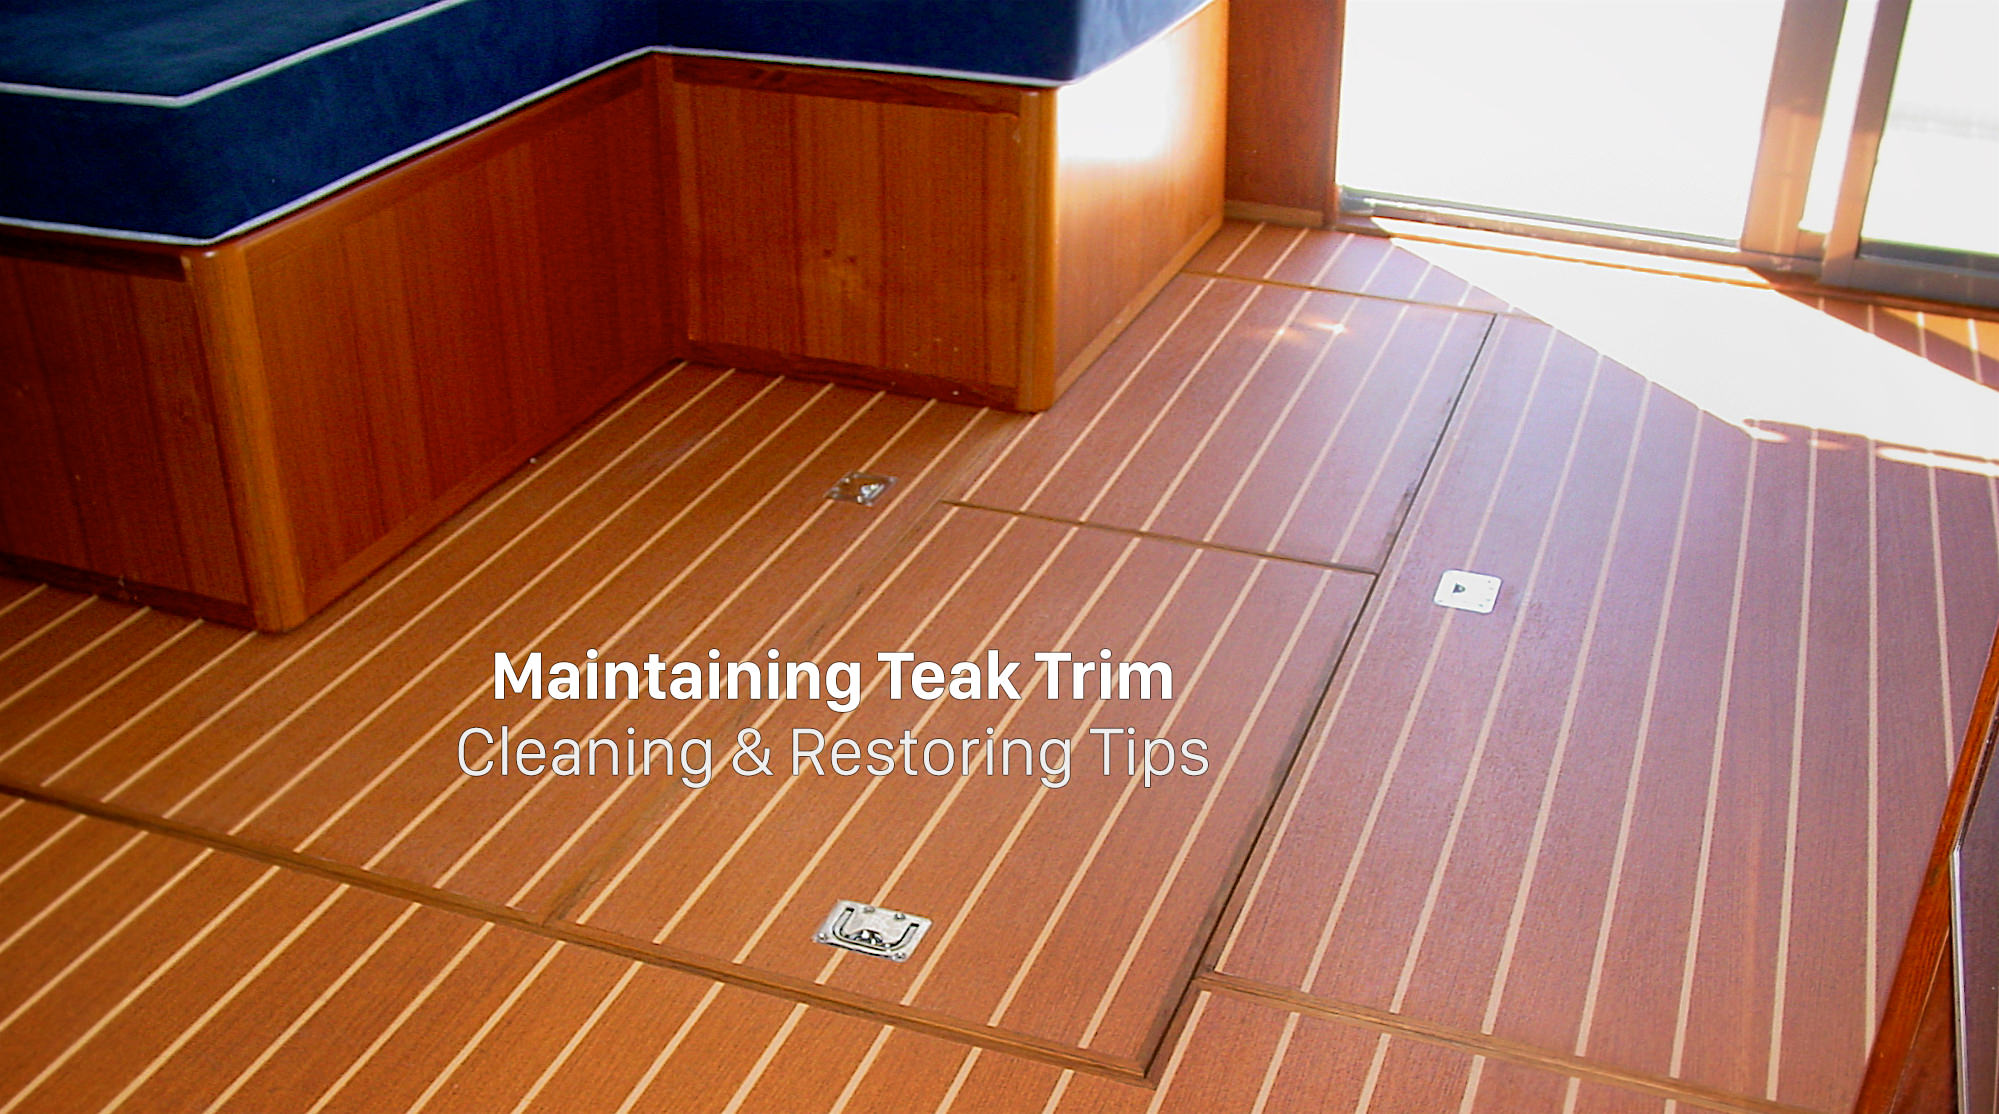 Maintaining Teak